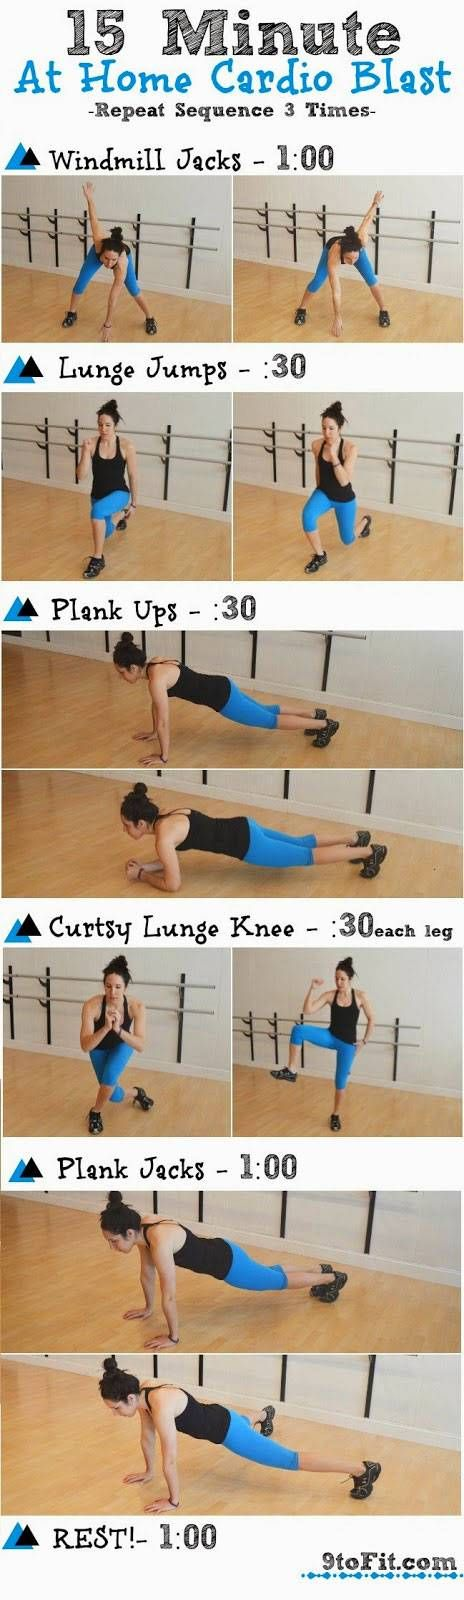 15 Minute At Home Cardio Blast Workout